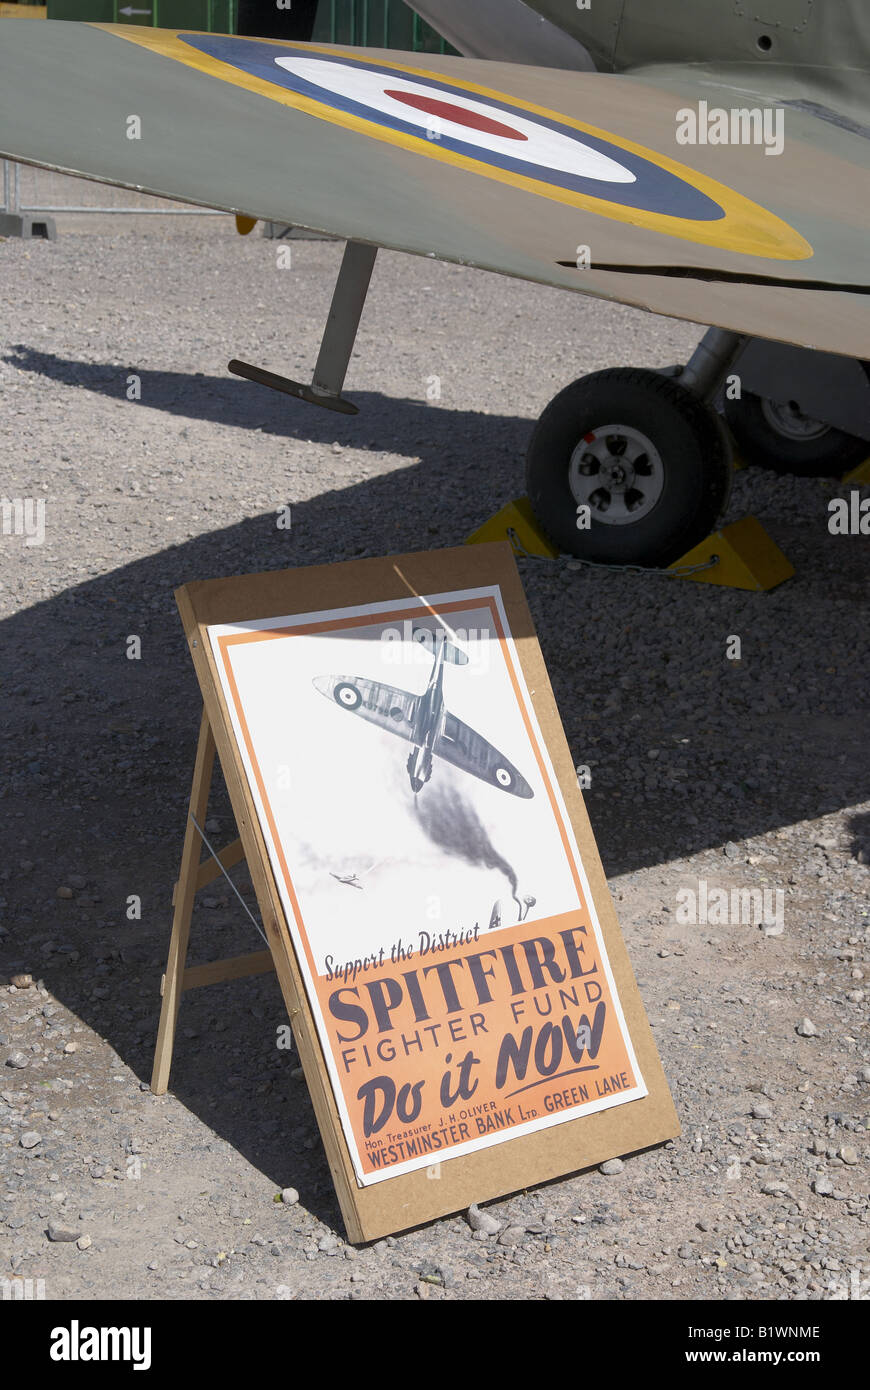 WW2 re-enactment somewhere in southern England just before D-Day - Spitfire Appeal poster and replica plane - Stock Image